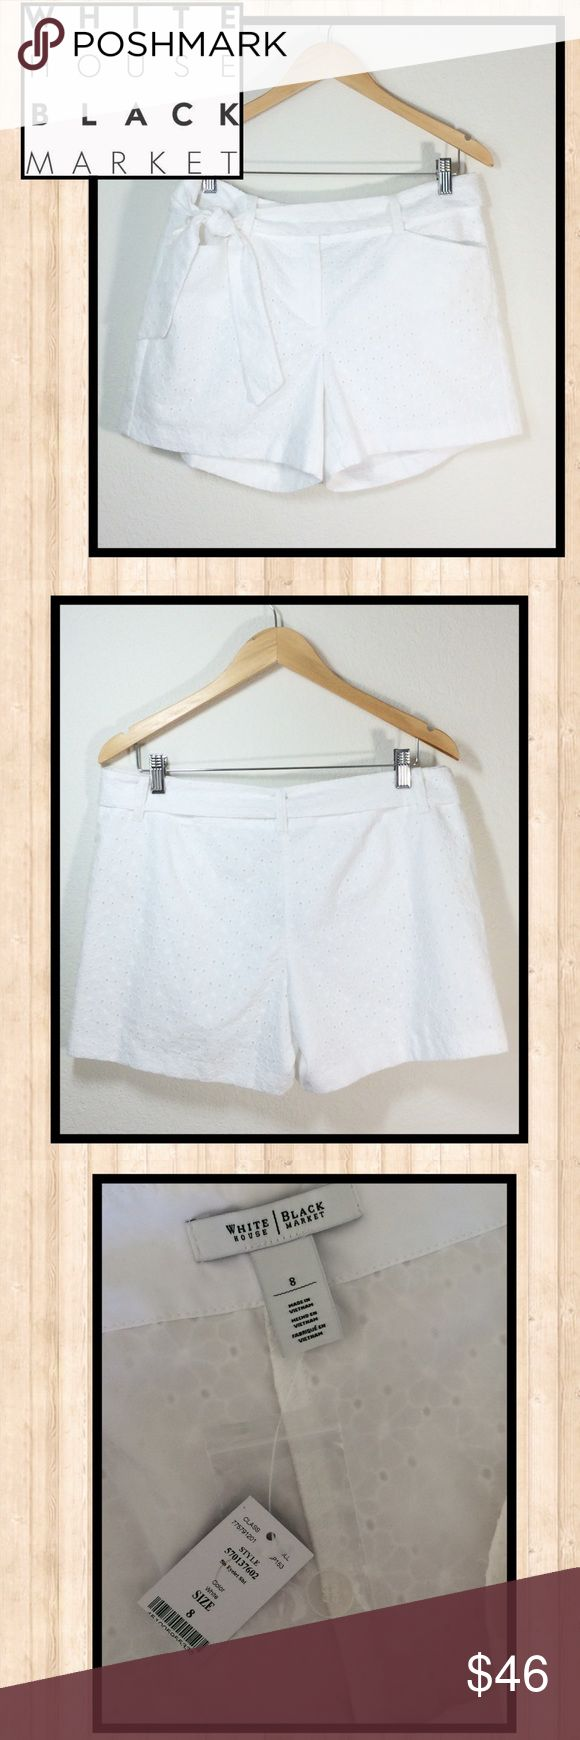 Darling WHBM white cotton eyelet shorts with belt These are adorable and perfect for Spring and Summer dressing. White cotton embroidered eyelet fabric with full lining. Optional tie belt. Brand new, never worn. Size 8. Non smoking home. White House Black Market Shorts